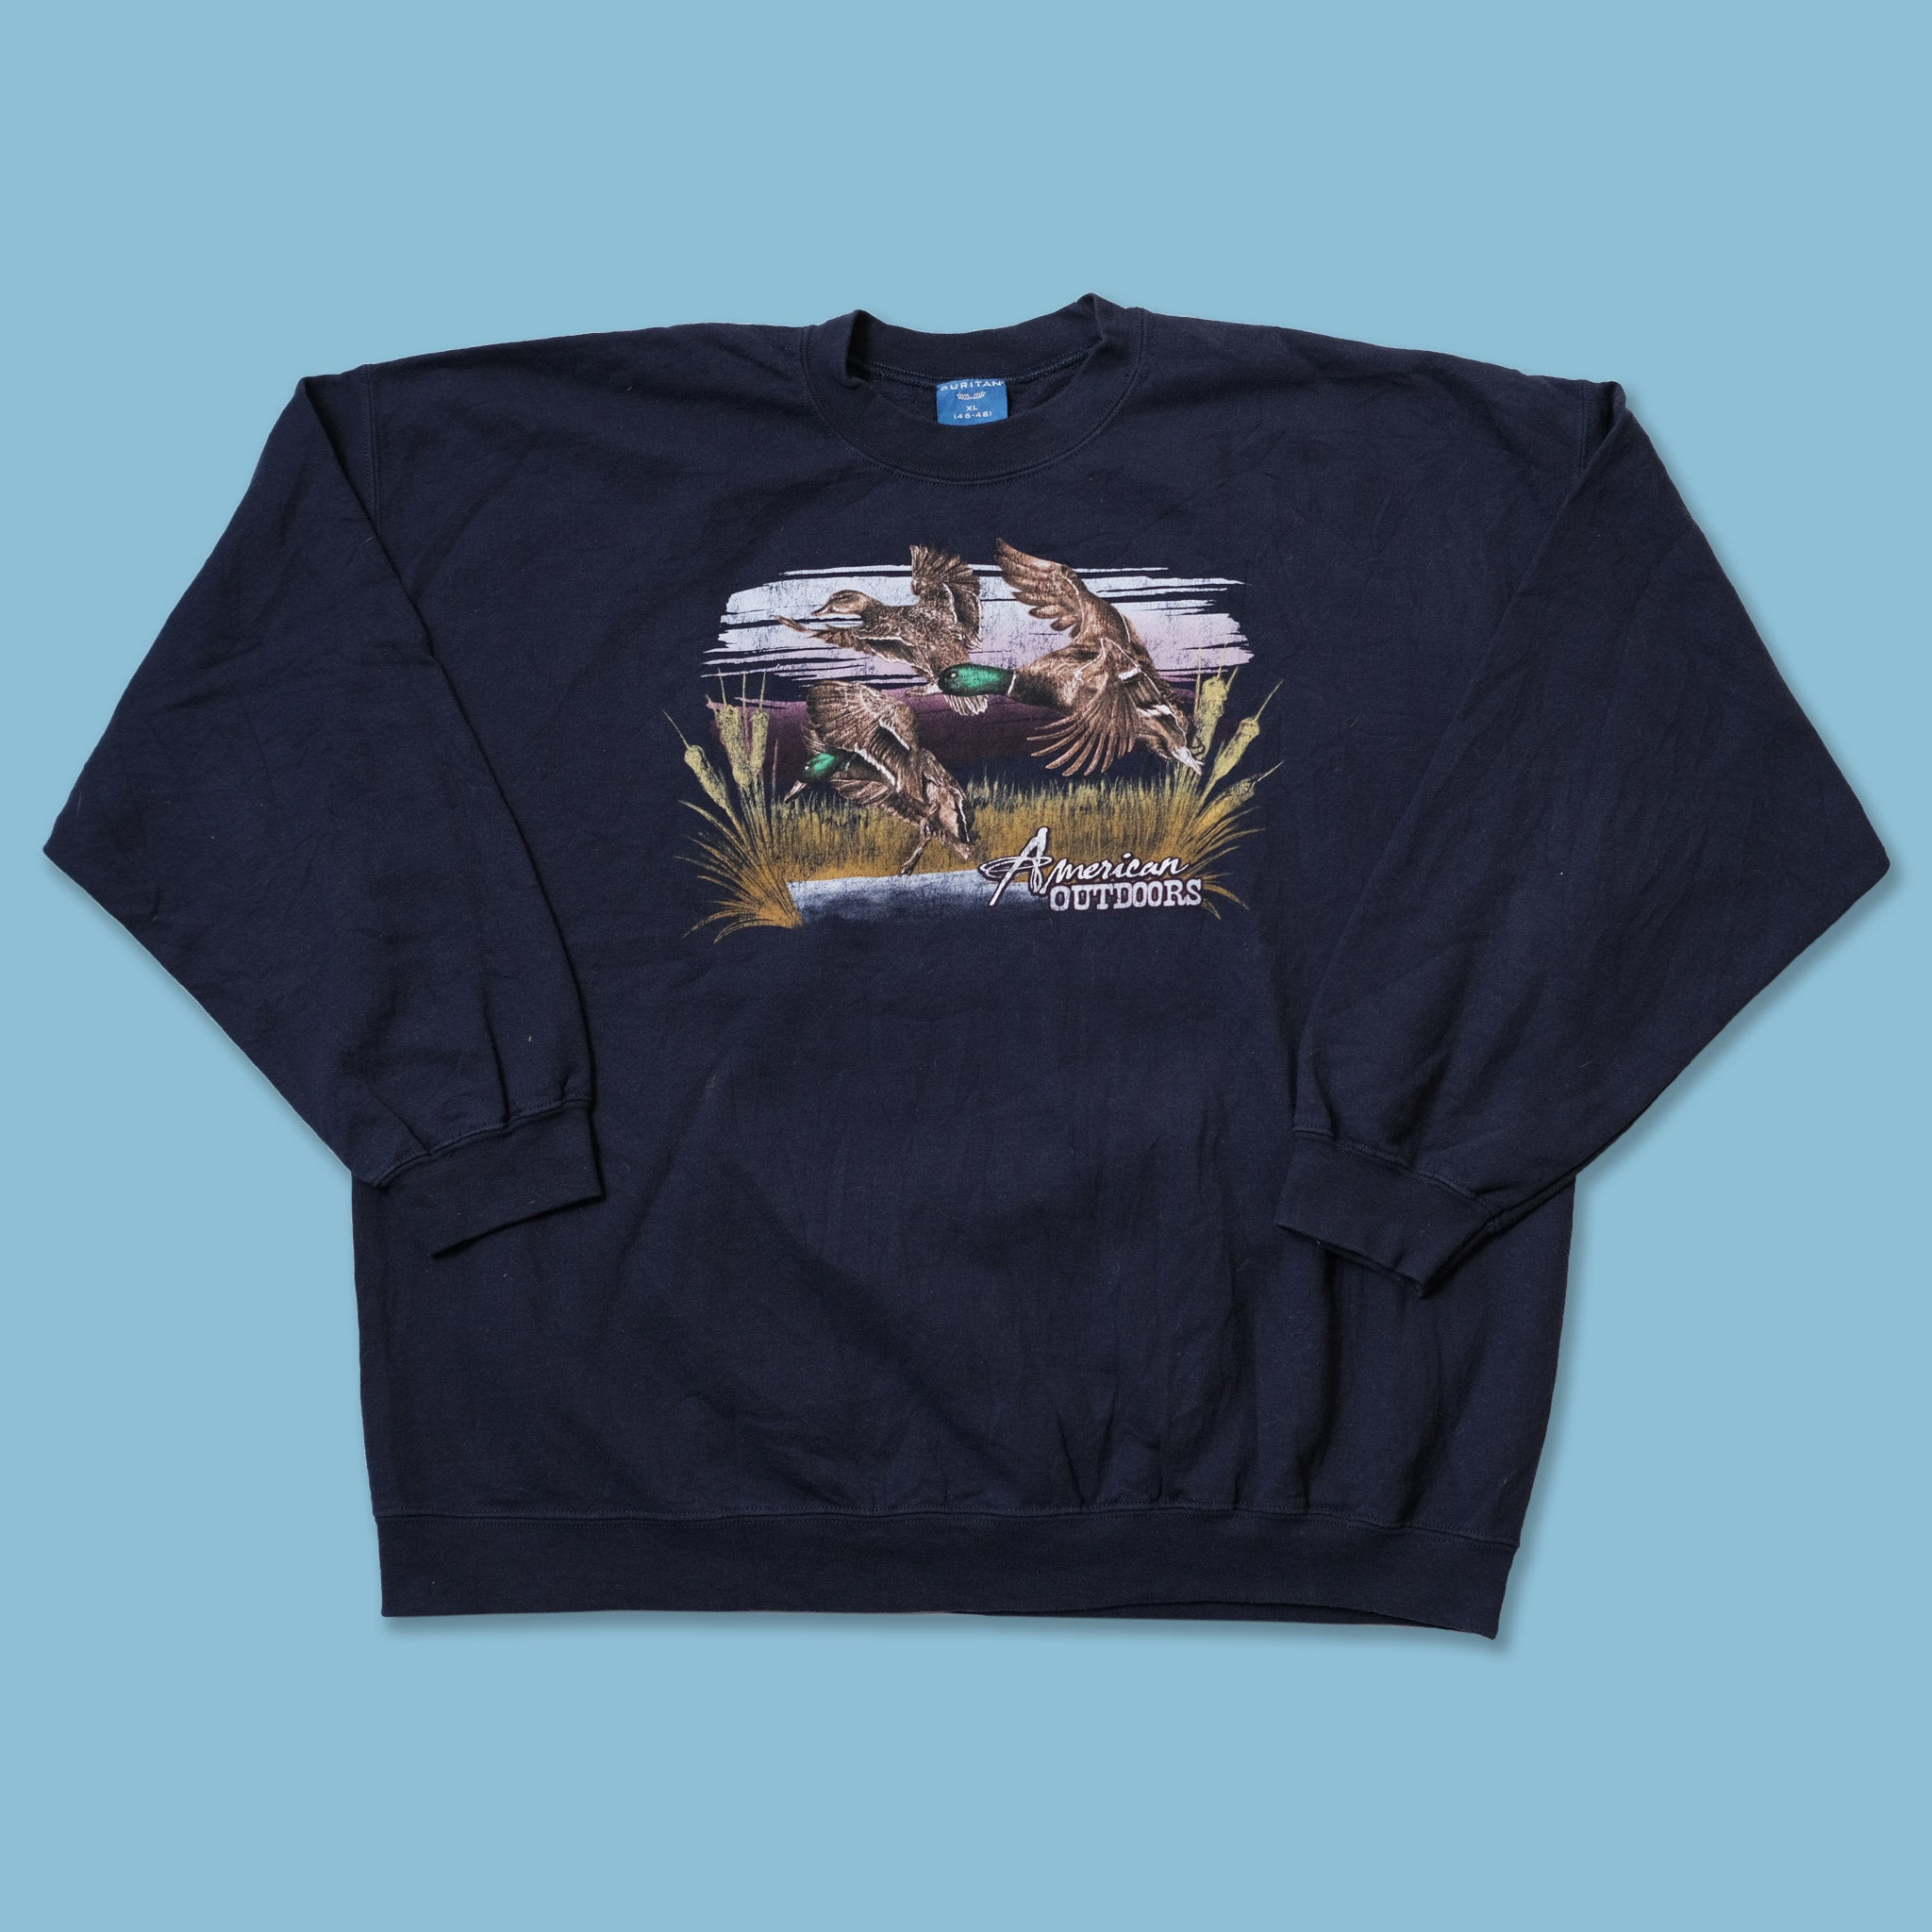 Vintage American Outdoors Sweater XLarge